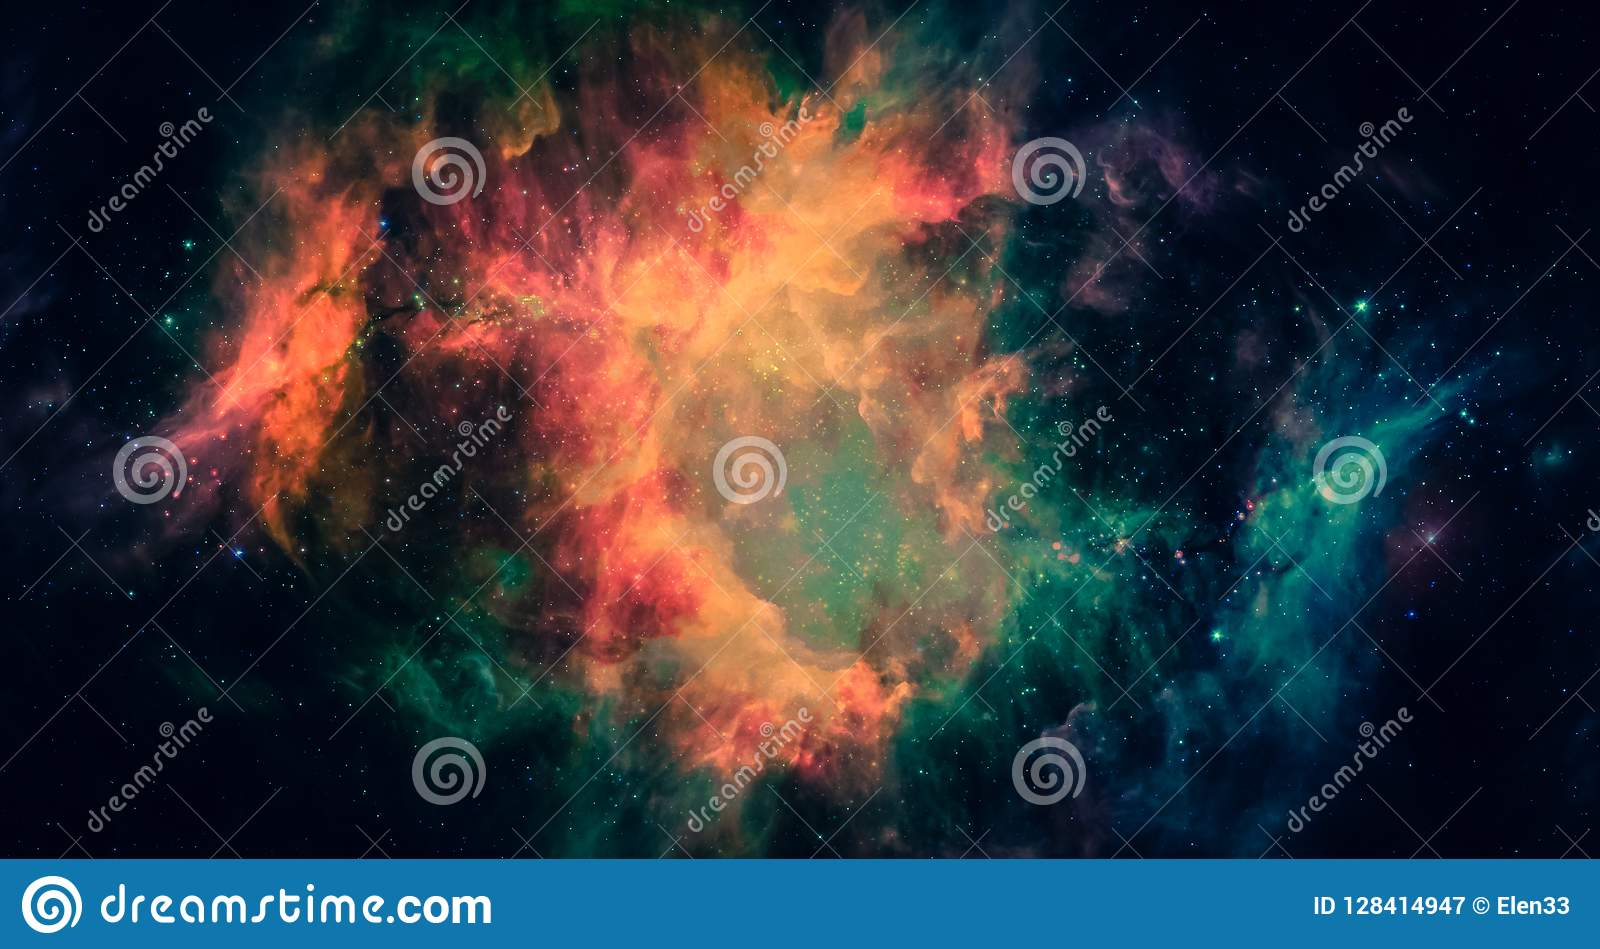 Nebula and galaxies in space